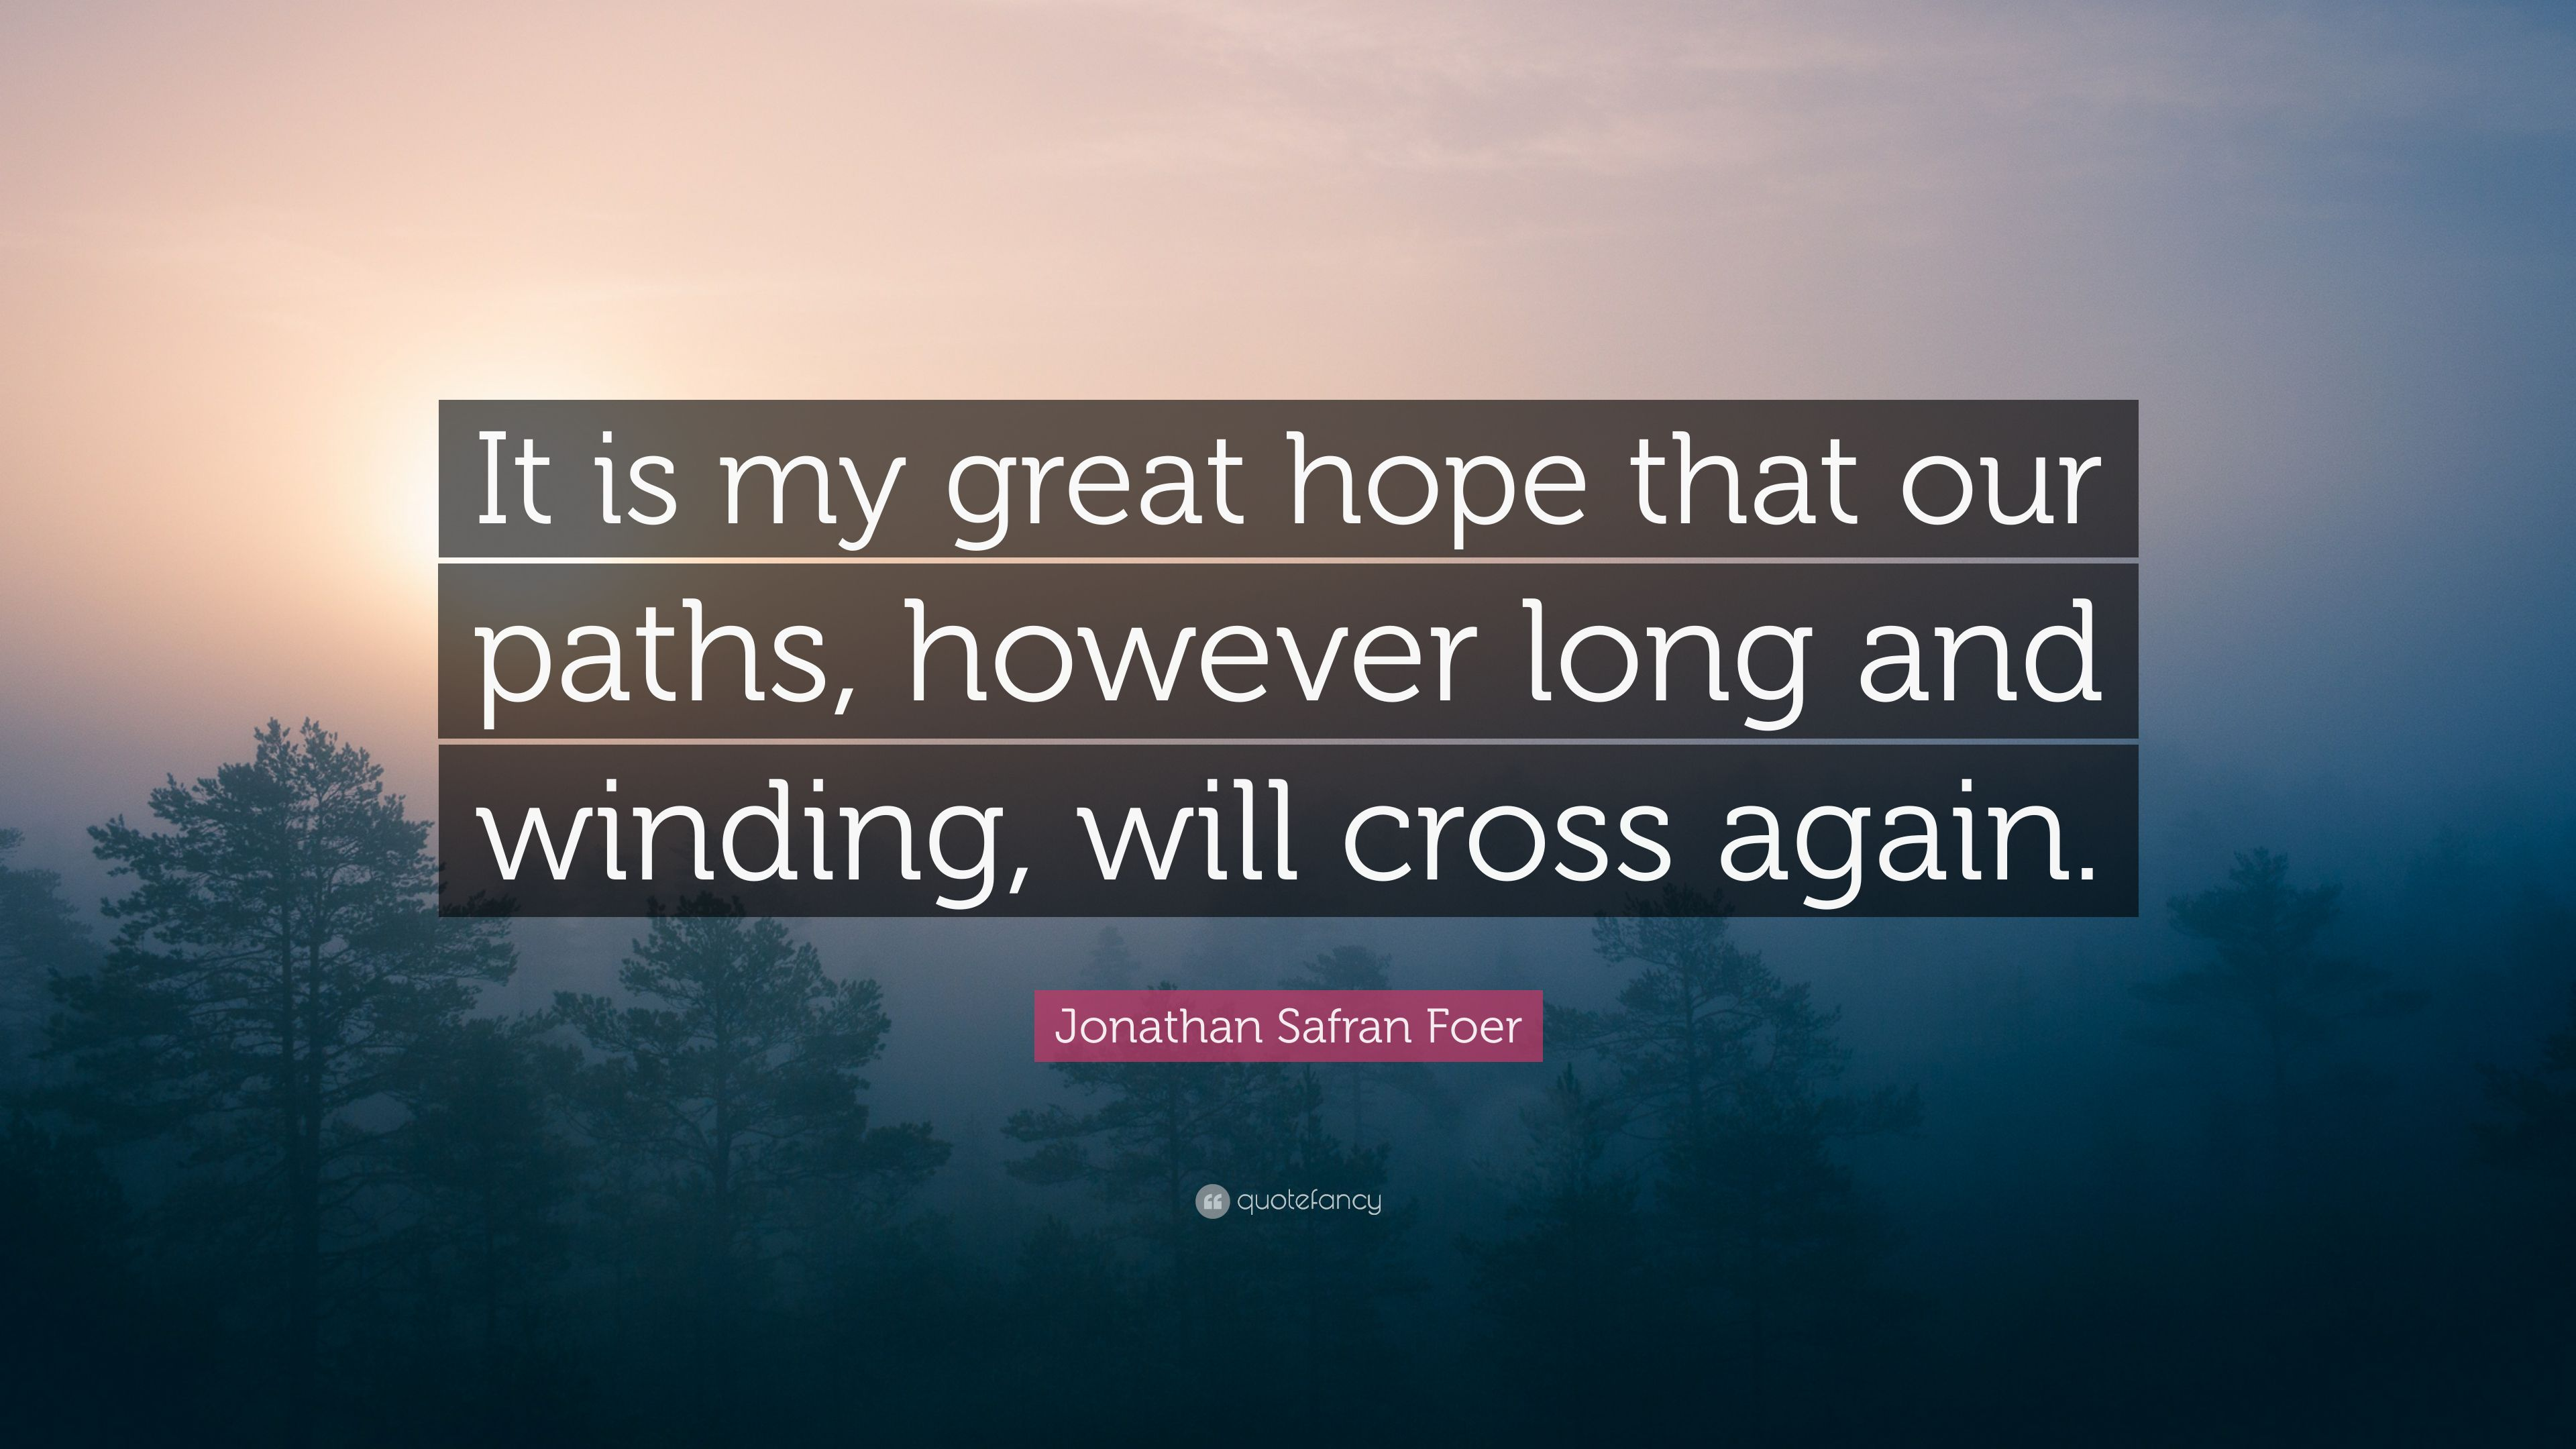 i hope our paths will cross again